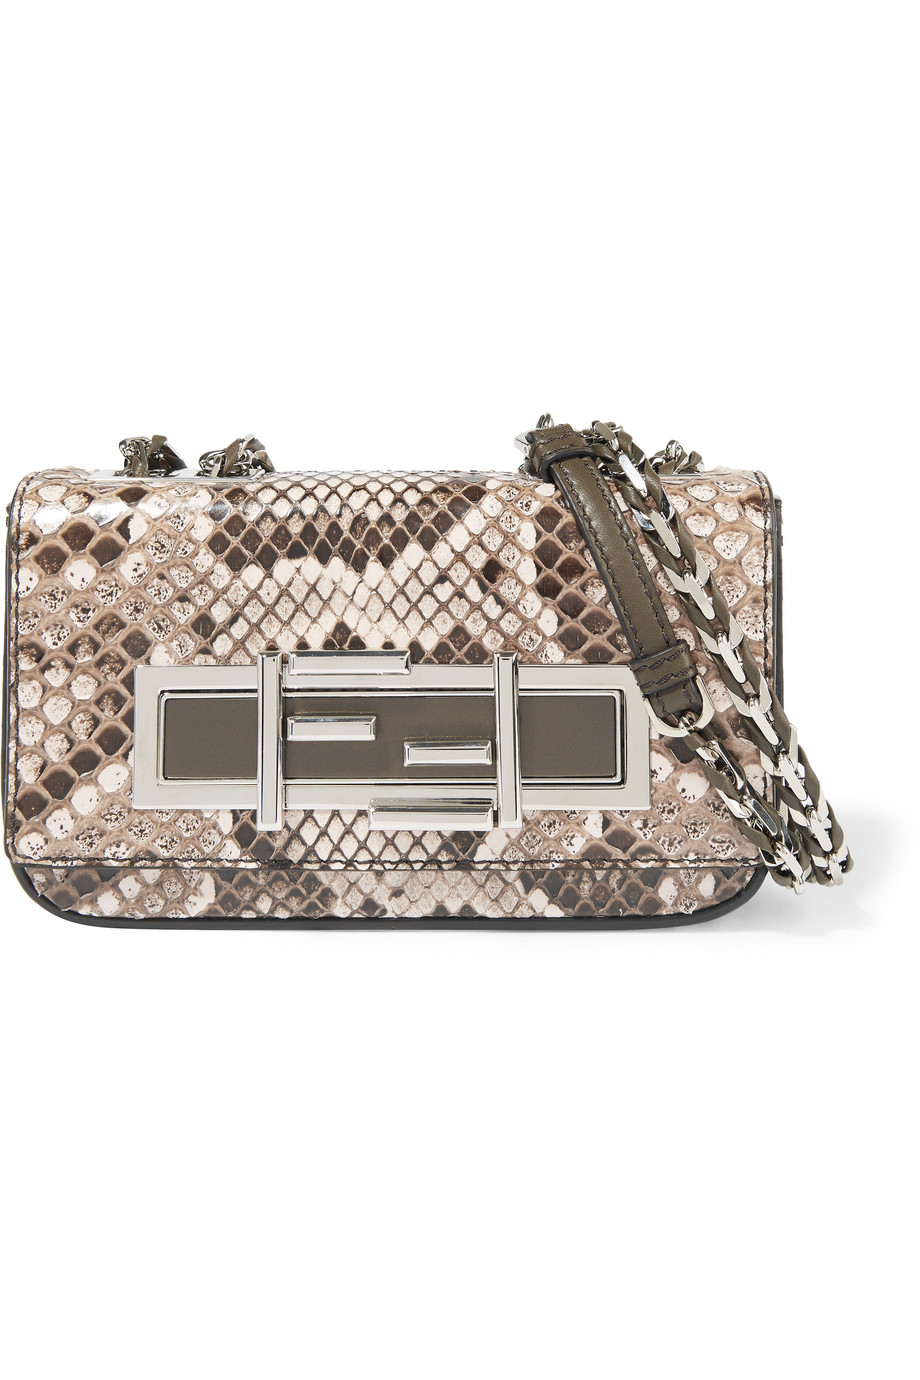 Fendi Baguette Mini Python Shoulder Bag, Neutral/Snake Print, Women's, Size: One Size